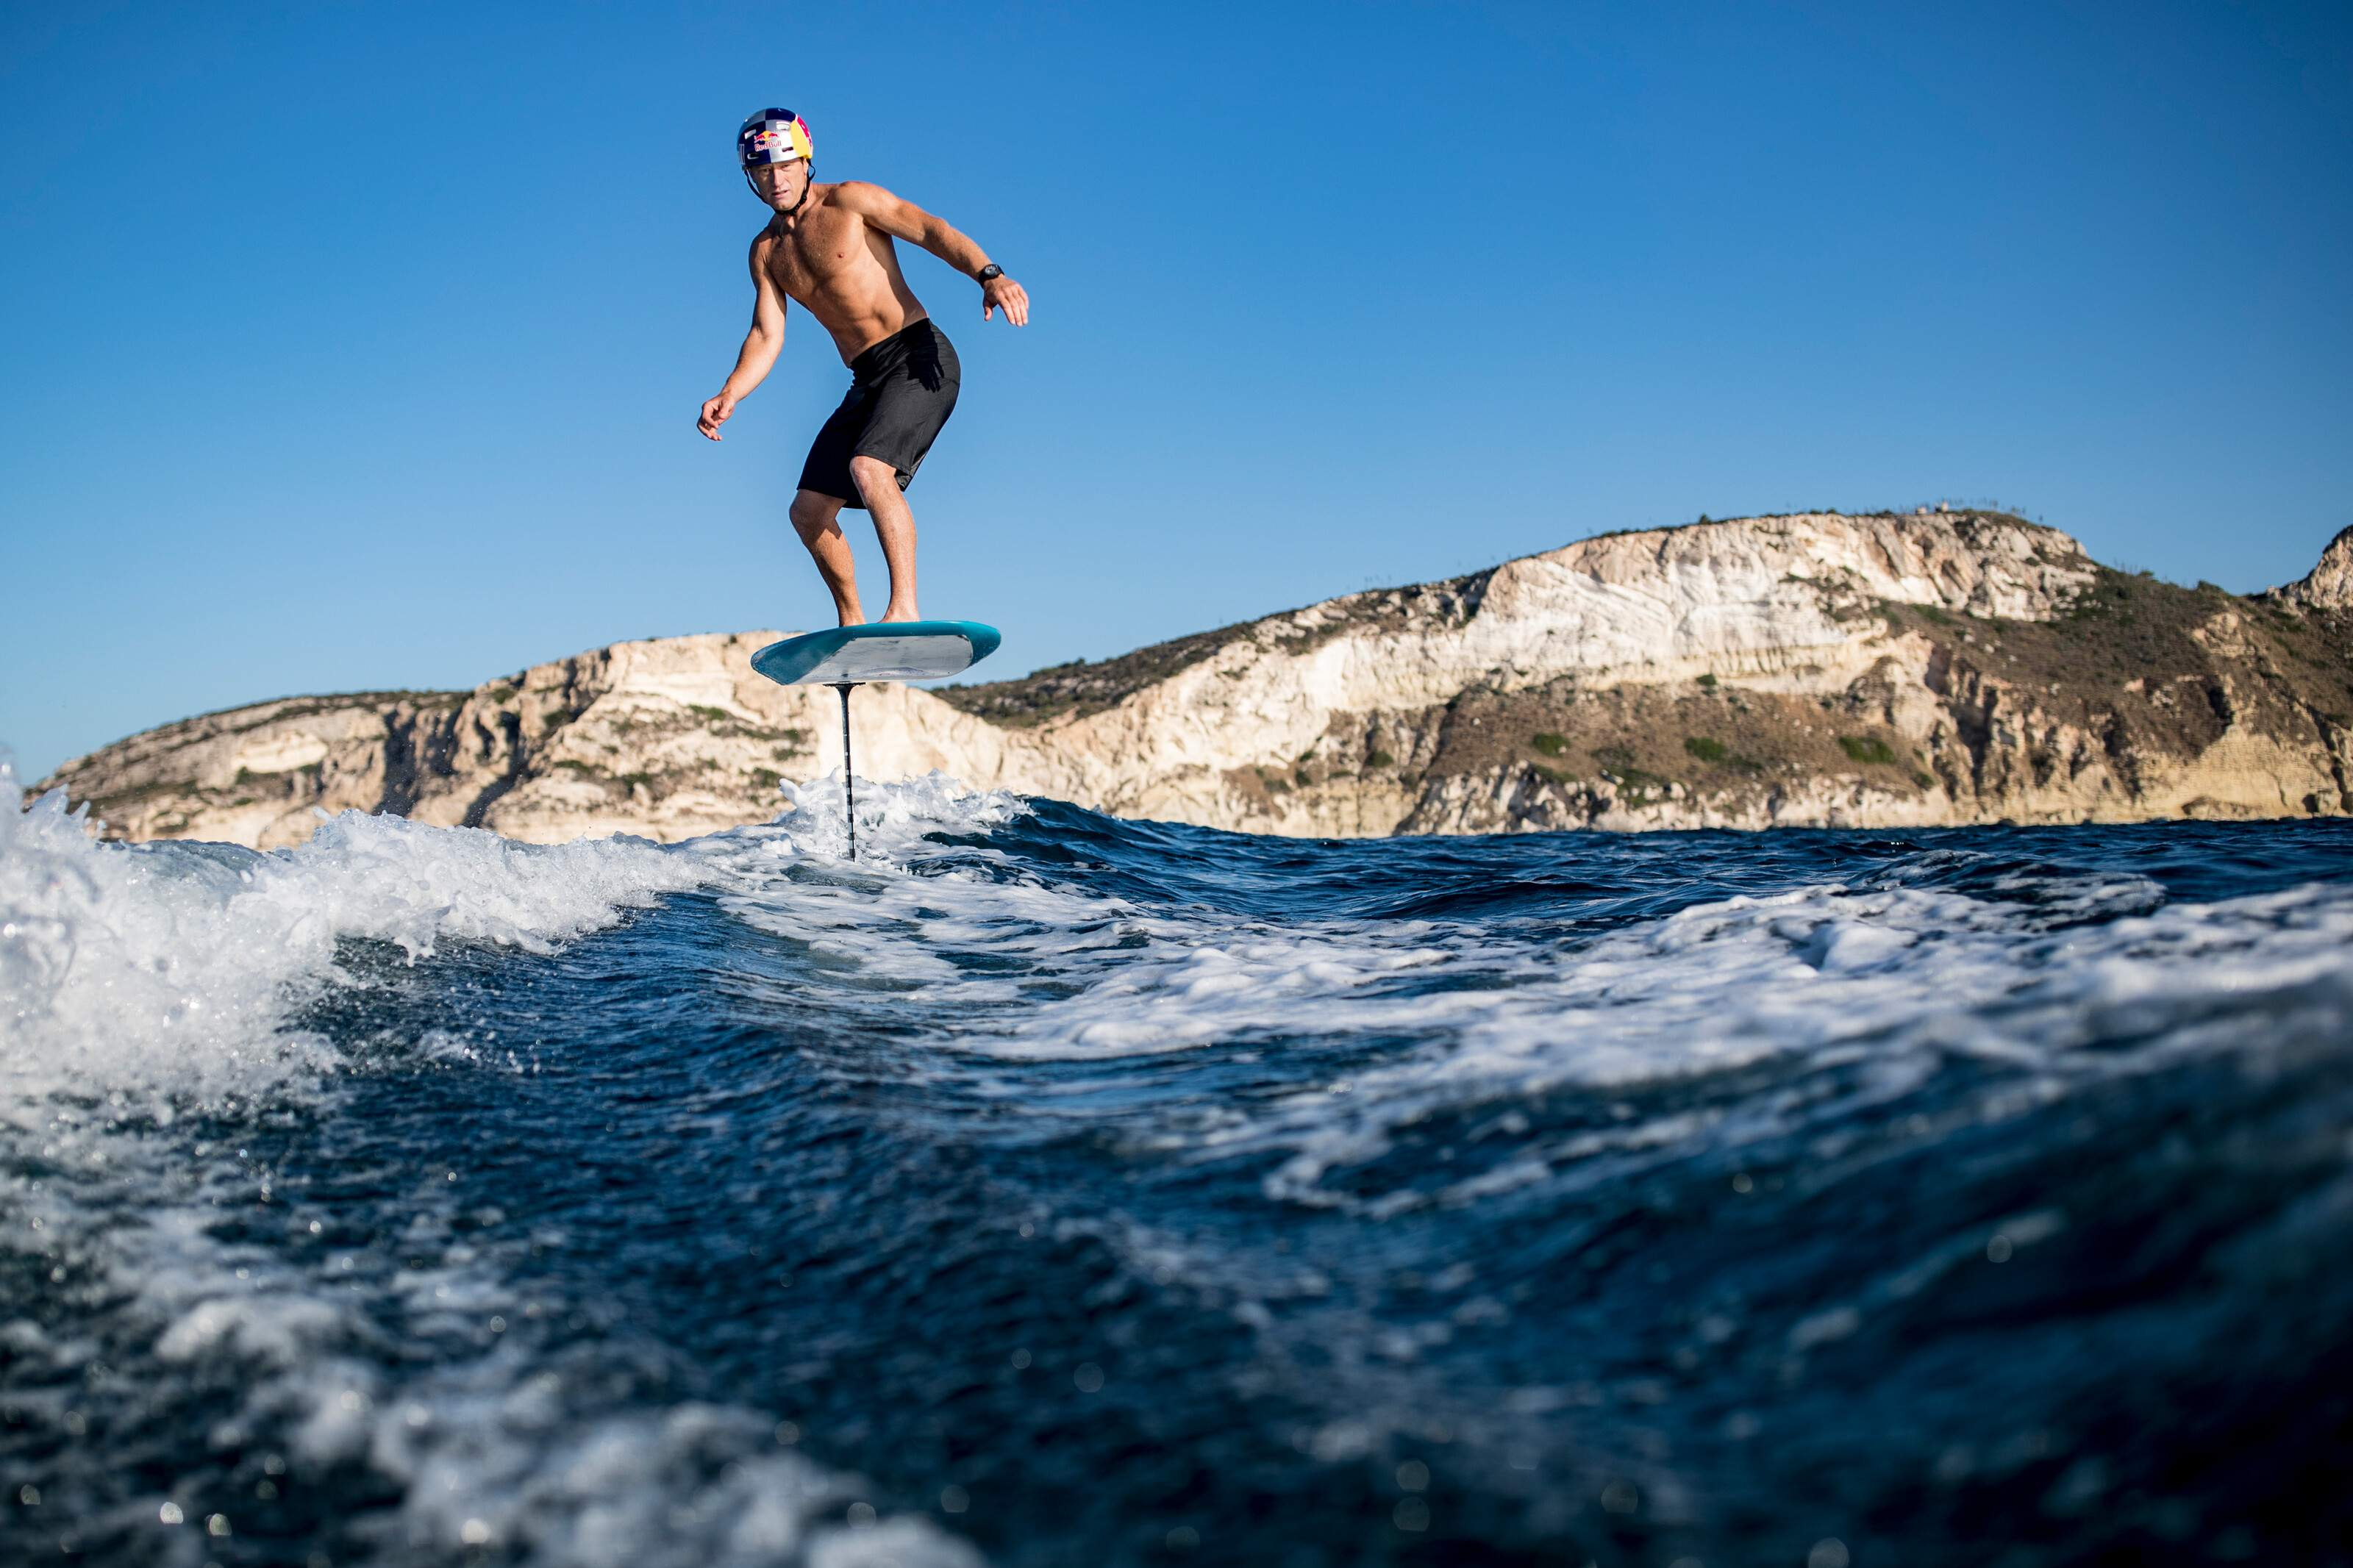 James Spithill (AUS) trains in Cagliari, Italy on August 15, 2019. Photographer Credit: Samo Vidic/Red Bull Content Pool